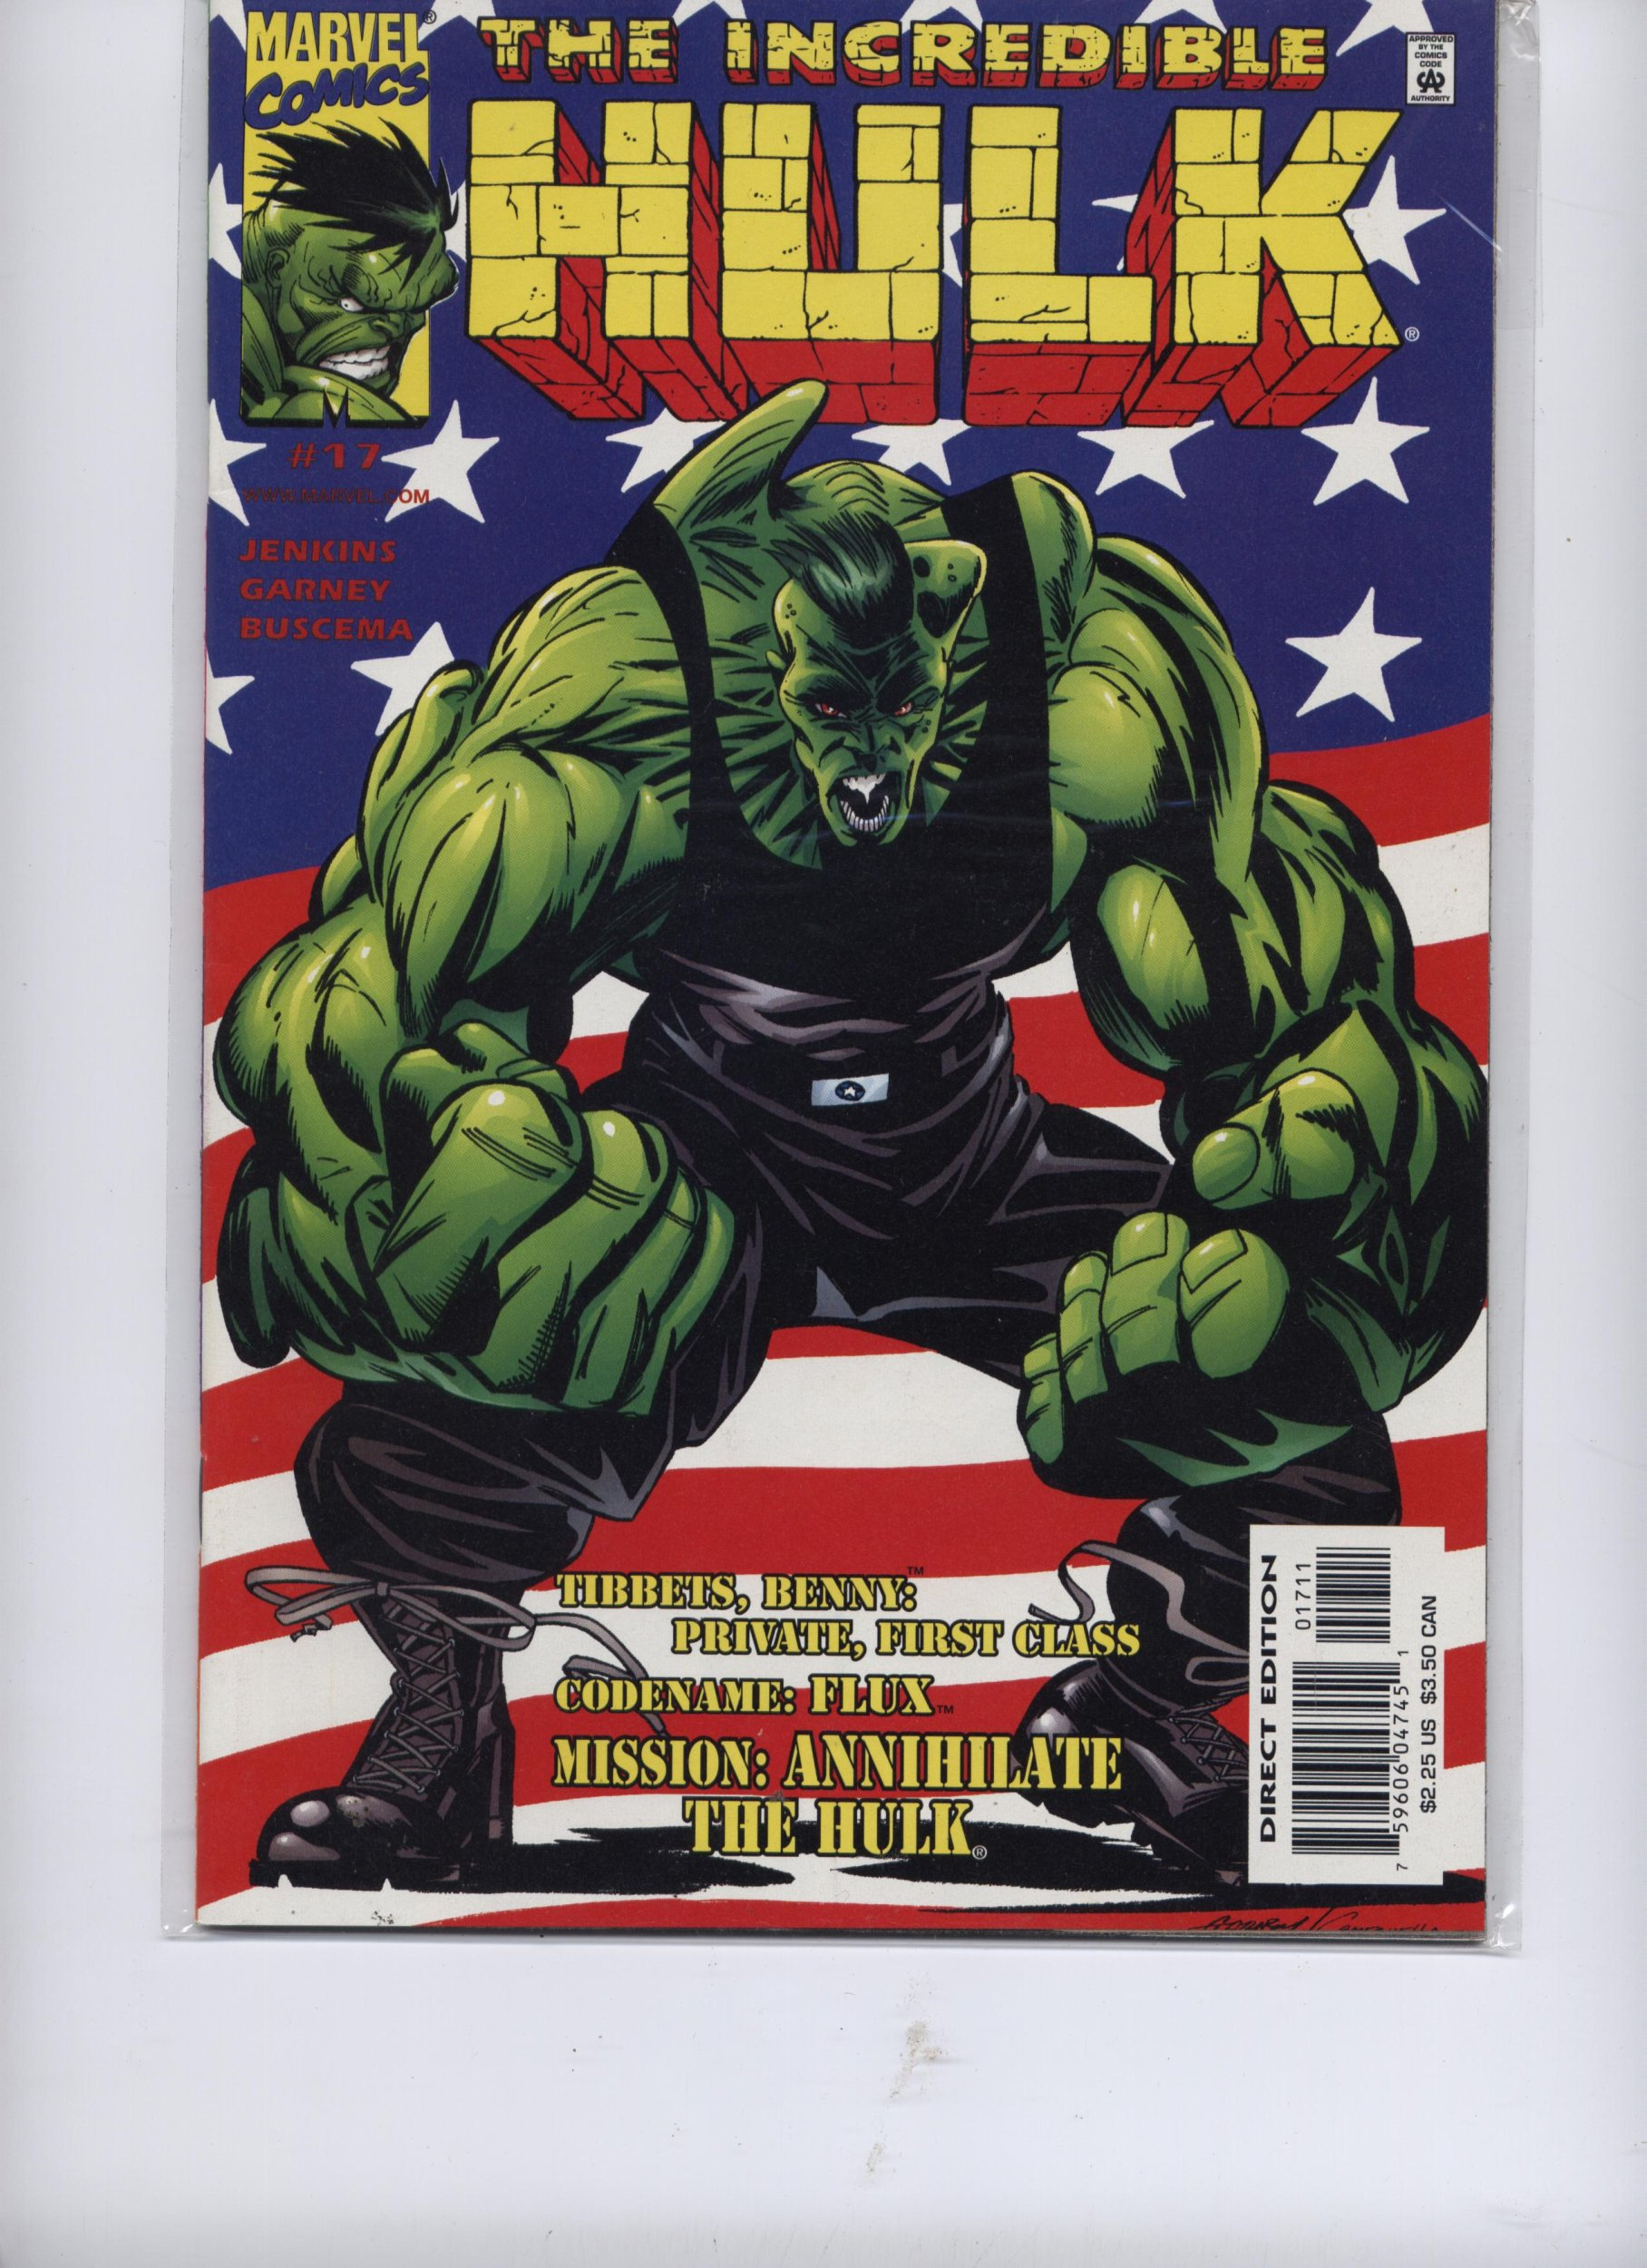 The Incredible Hulk (2008) #17 pdf